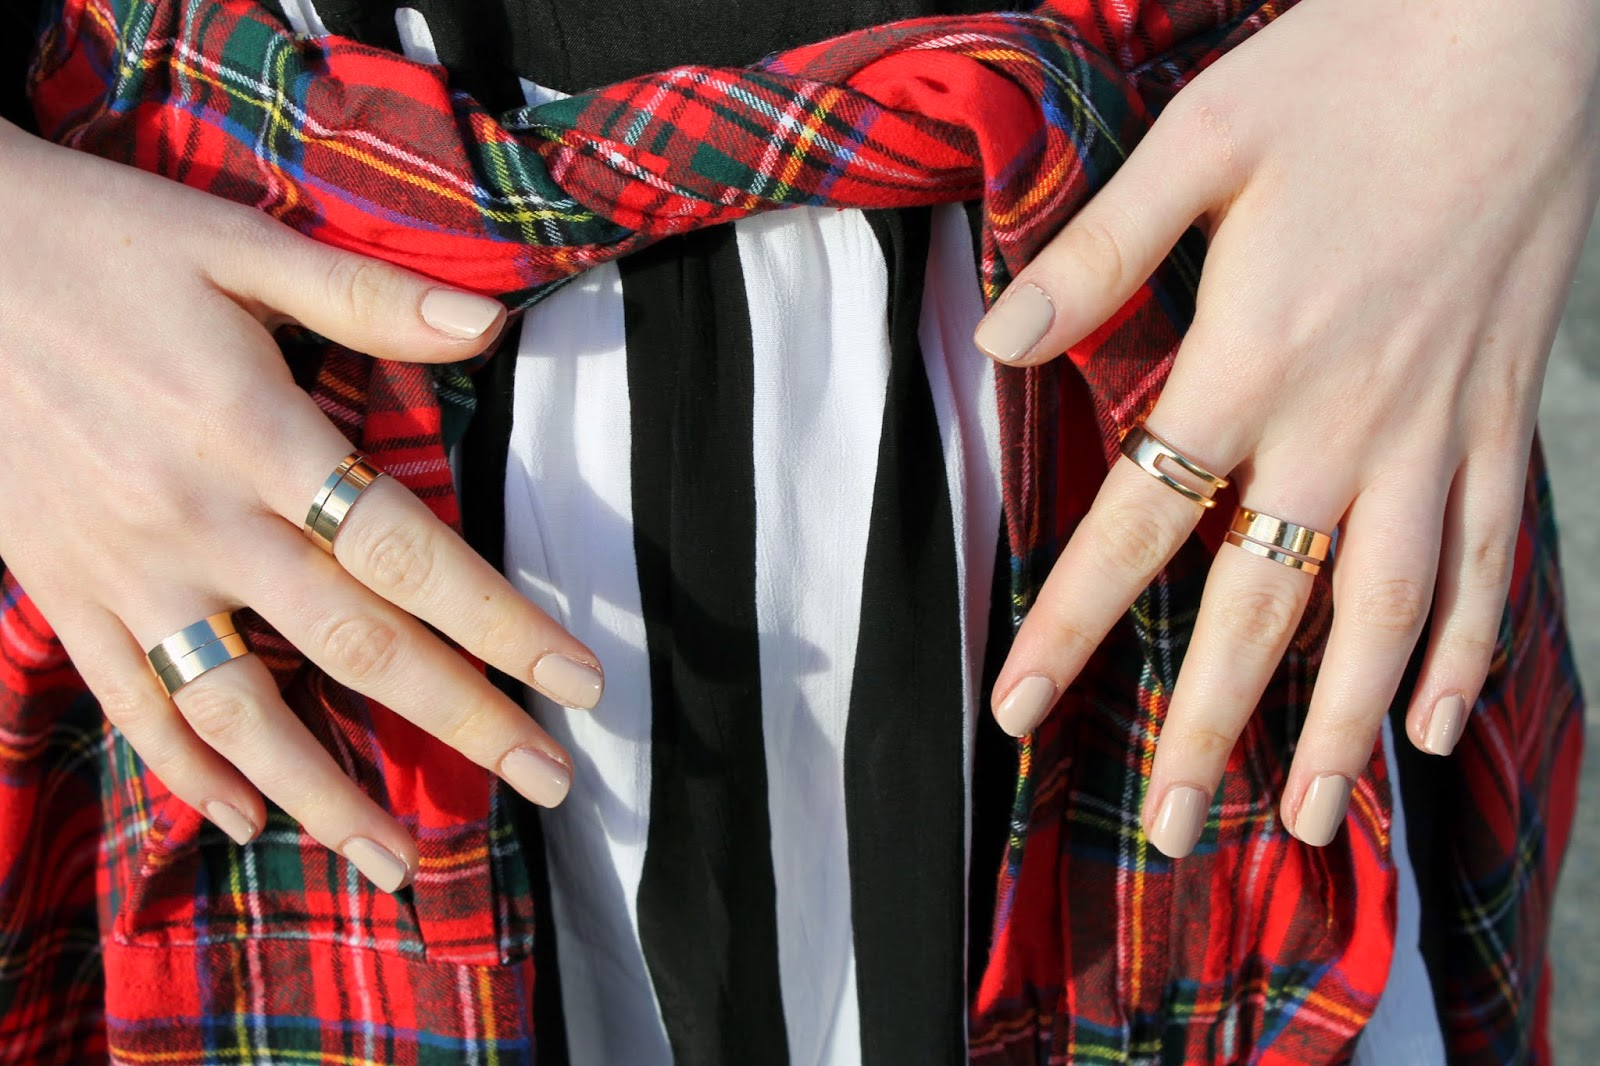 primark rings, gold rings, stack, rings stacked up